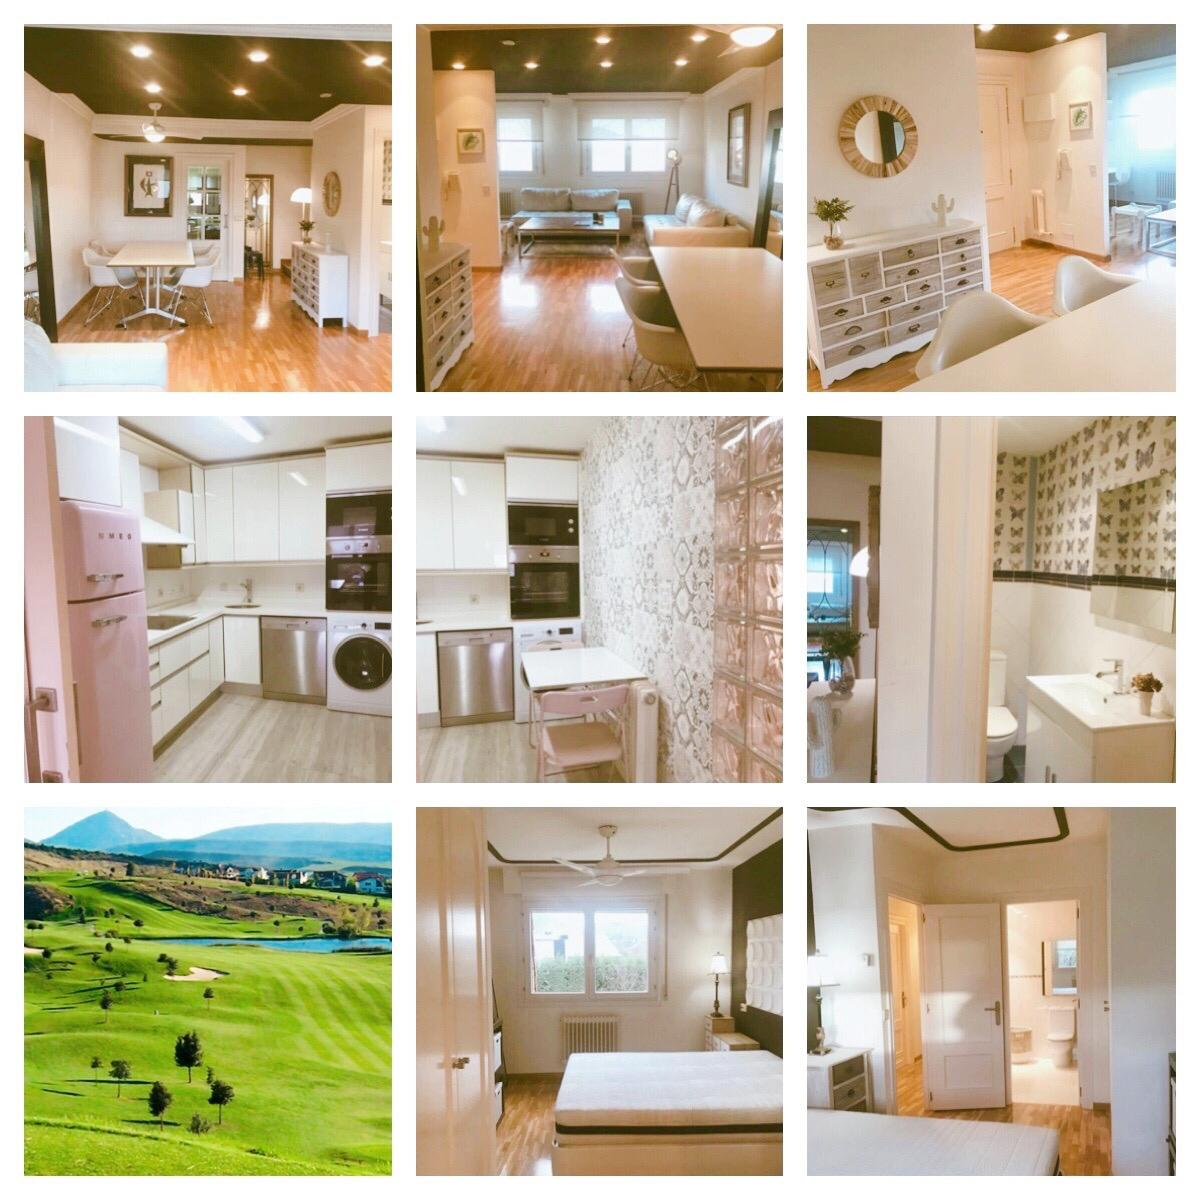 duplex-campo-golf-wehomes